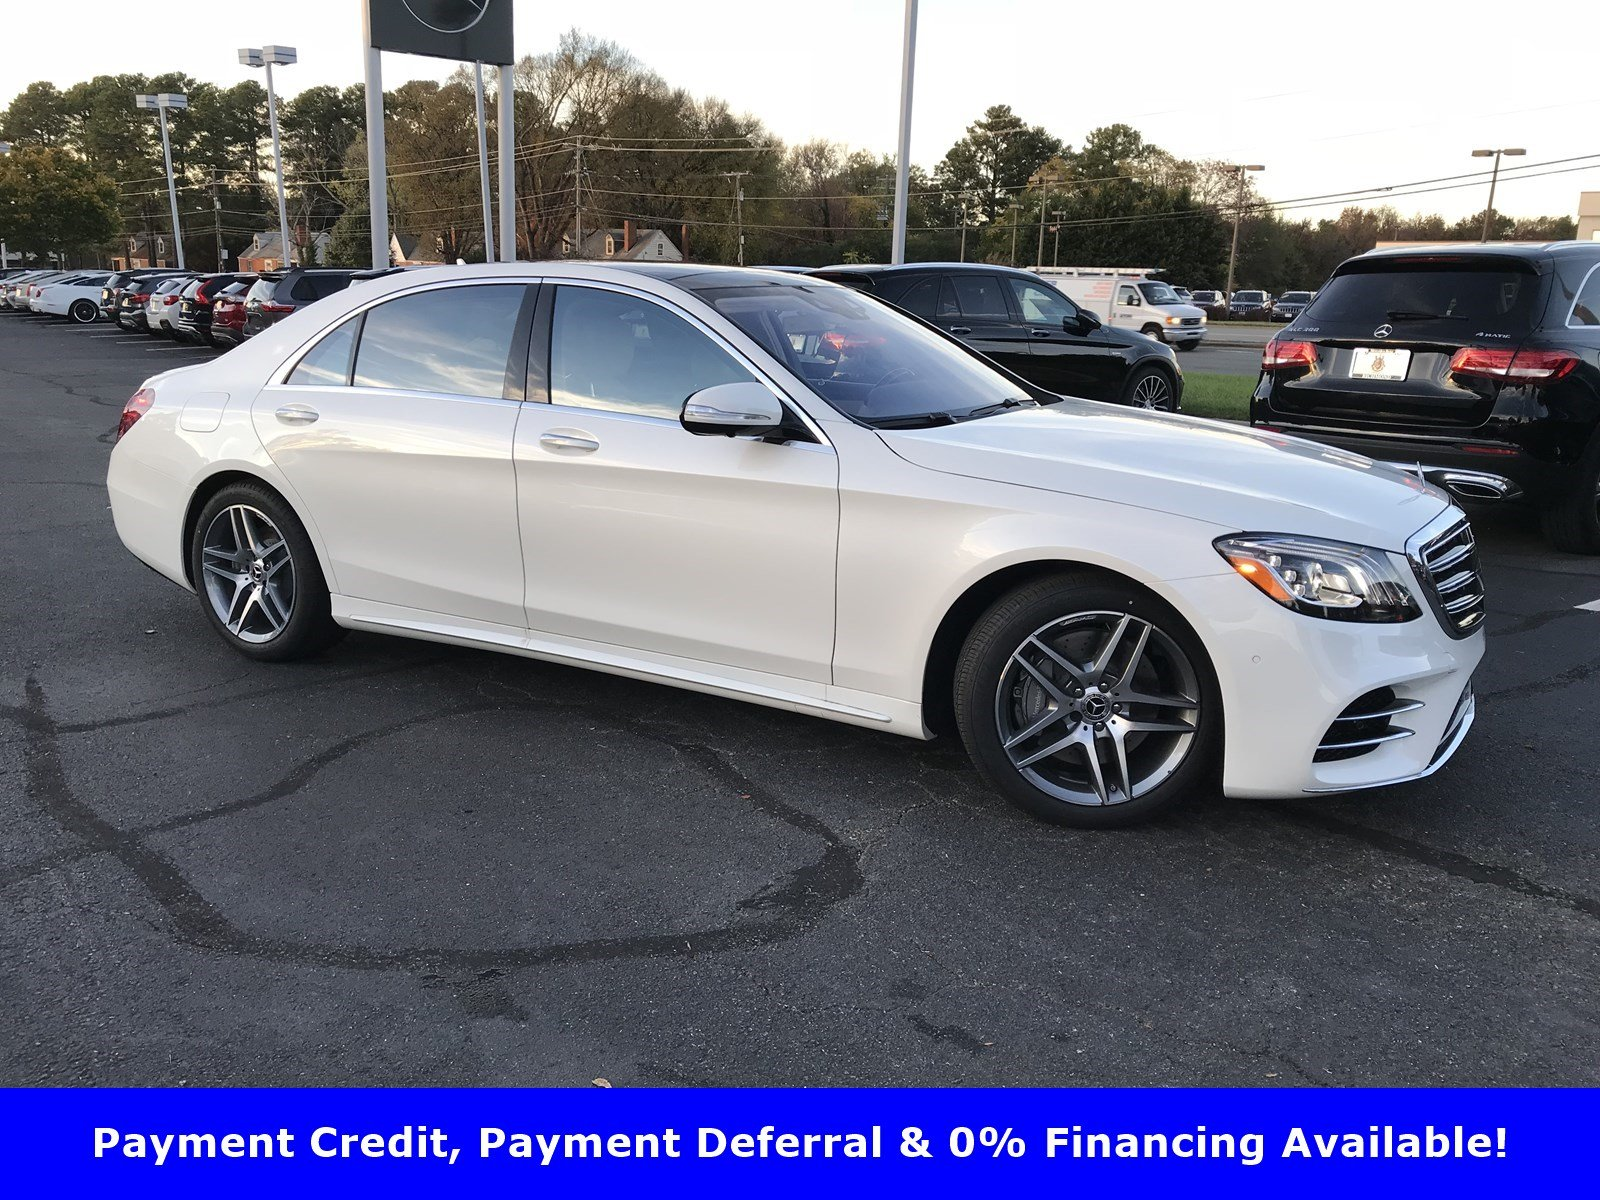 2020 Designo Diamond White Metallic Mercedes-Benz S-Class